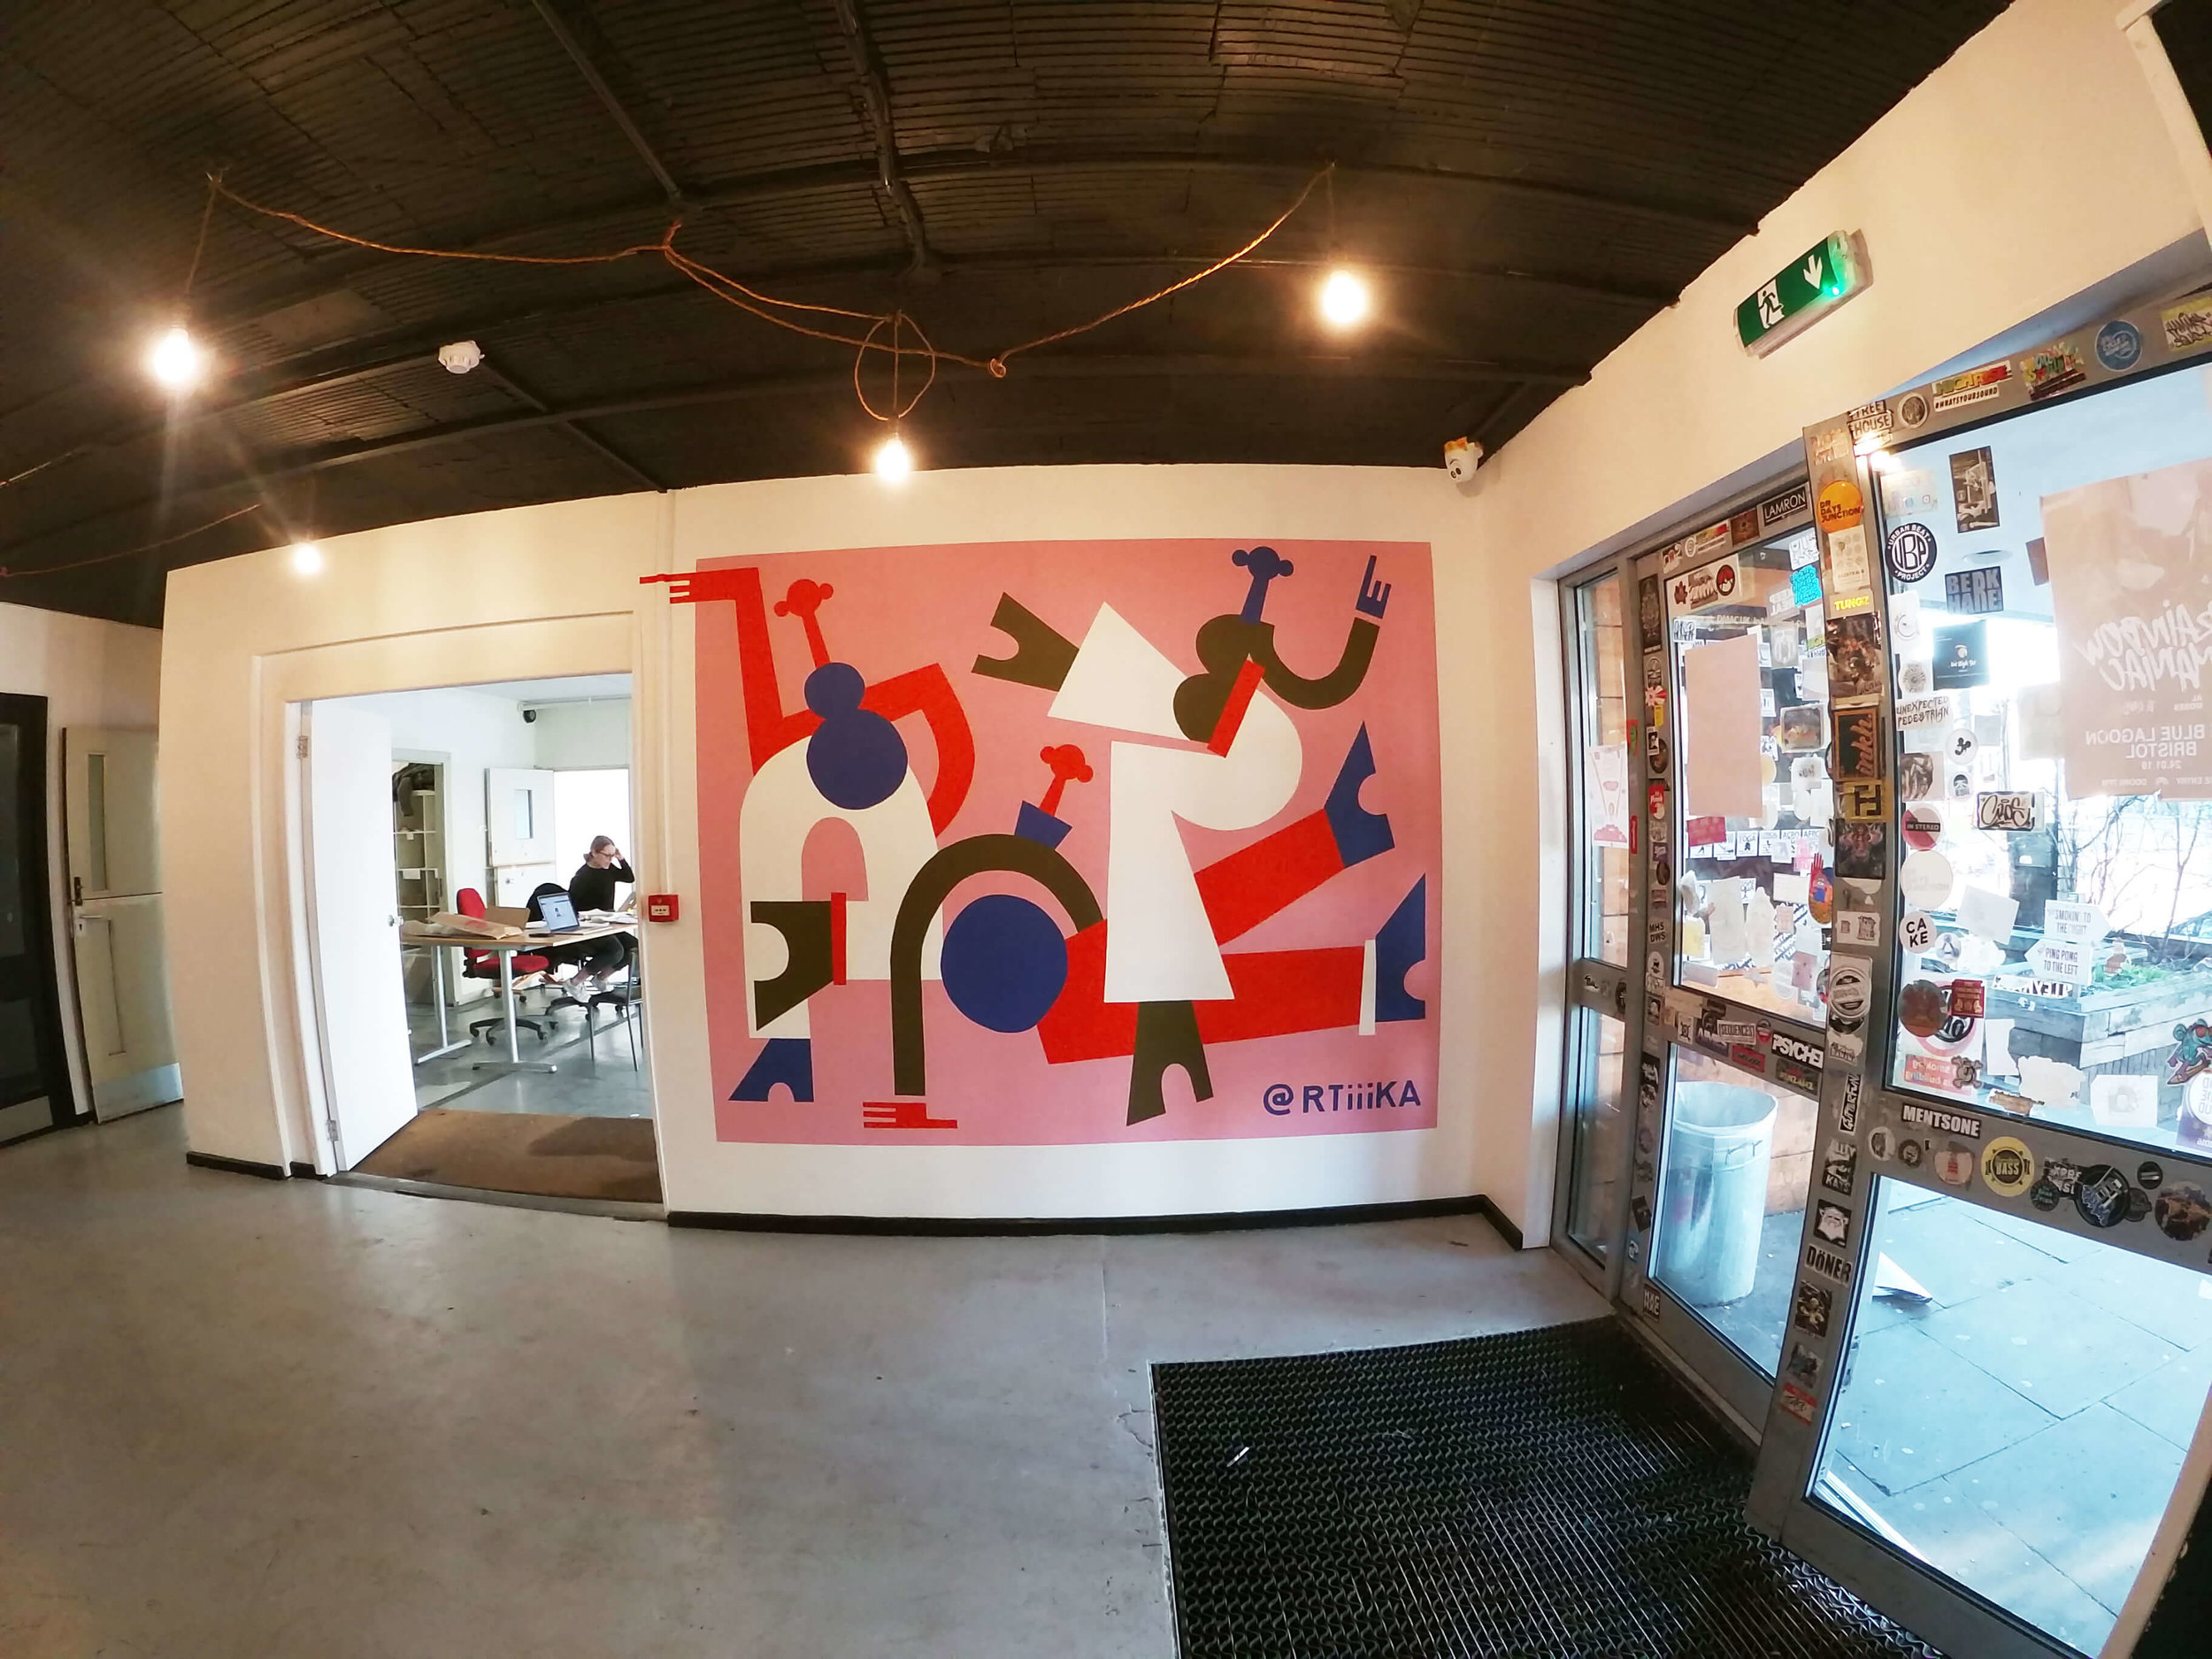 BAM! - A mural design for Hamilton House to champion its existing culture of community, collaboration and creativity.The mural features vibrant colours, energetic movement and playful shapes.Get in touch if you are interested in an RTIIIKA mural.